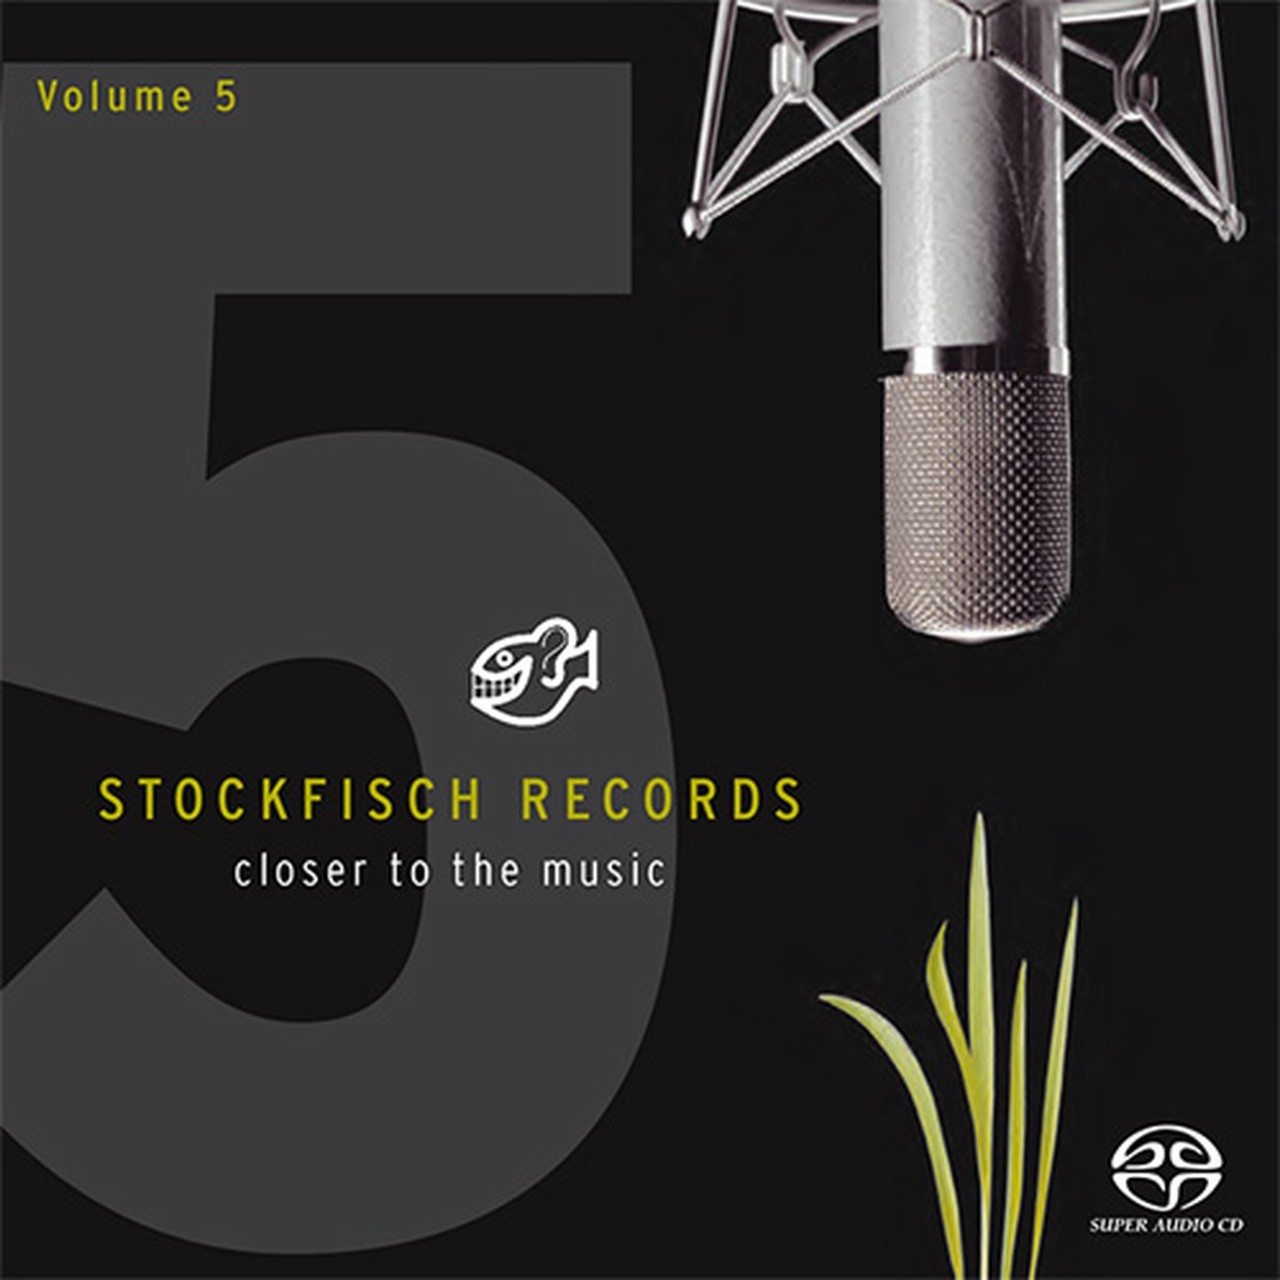 STOCKFISCH RECORDS CLOSER TO THE MUSIC VOL. 5